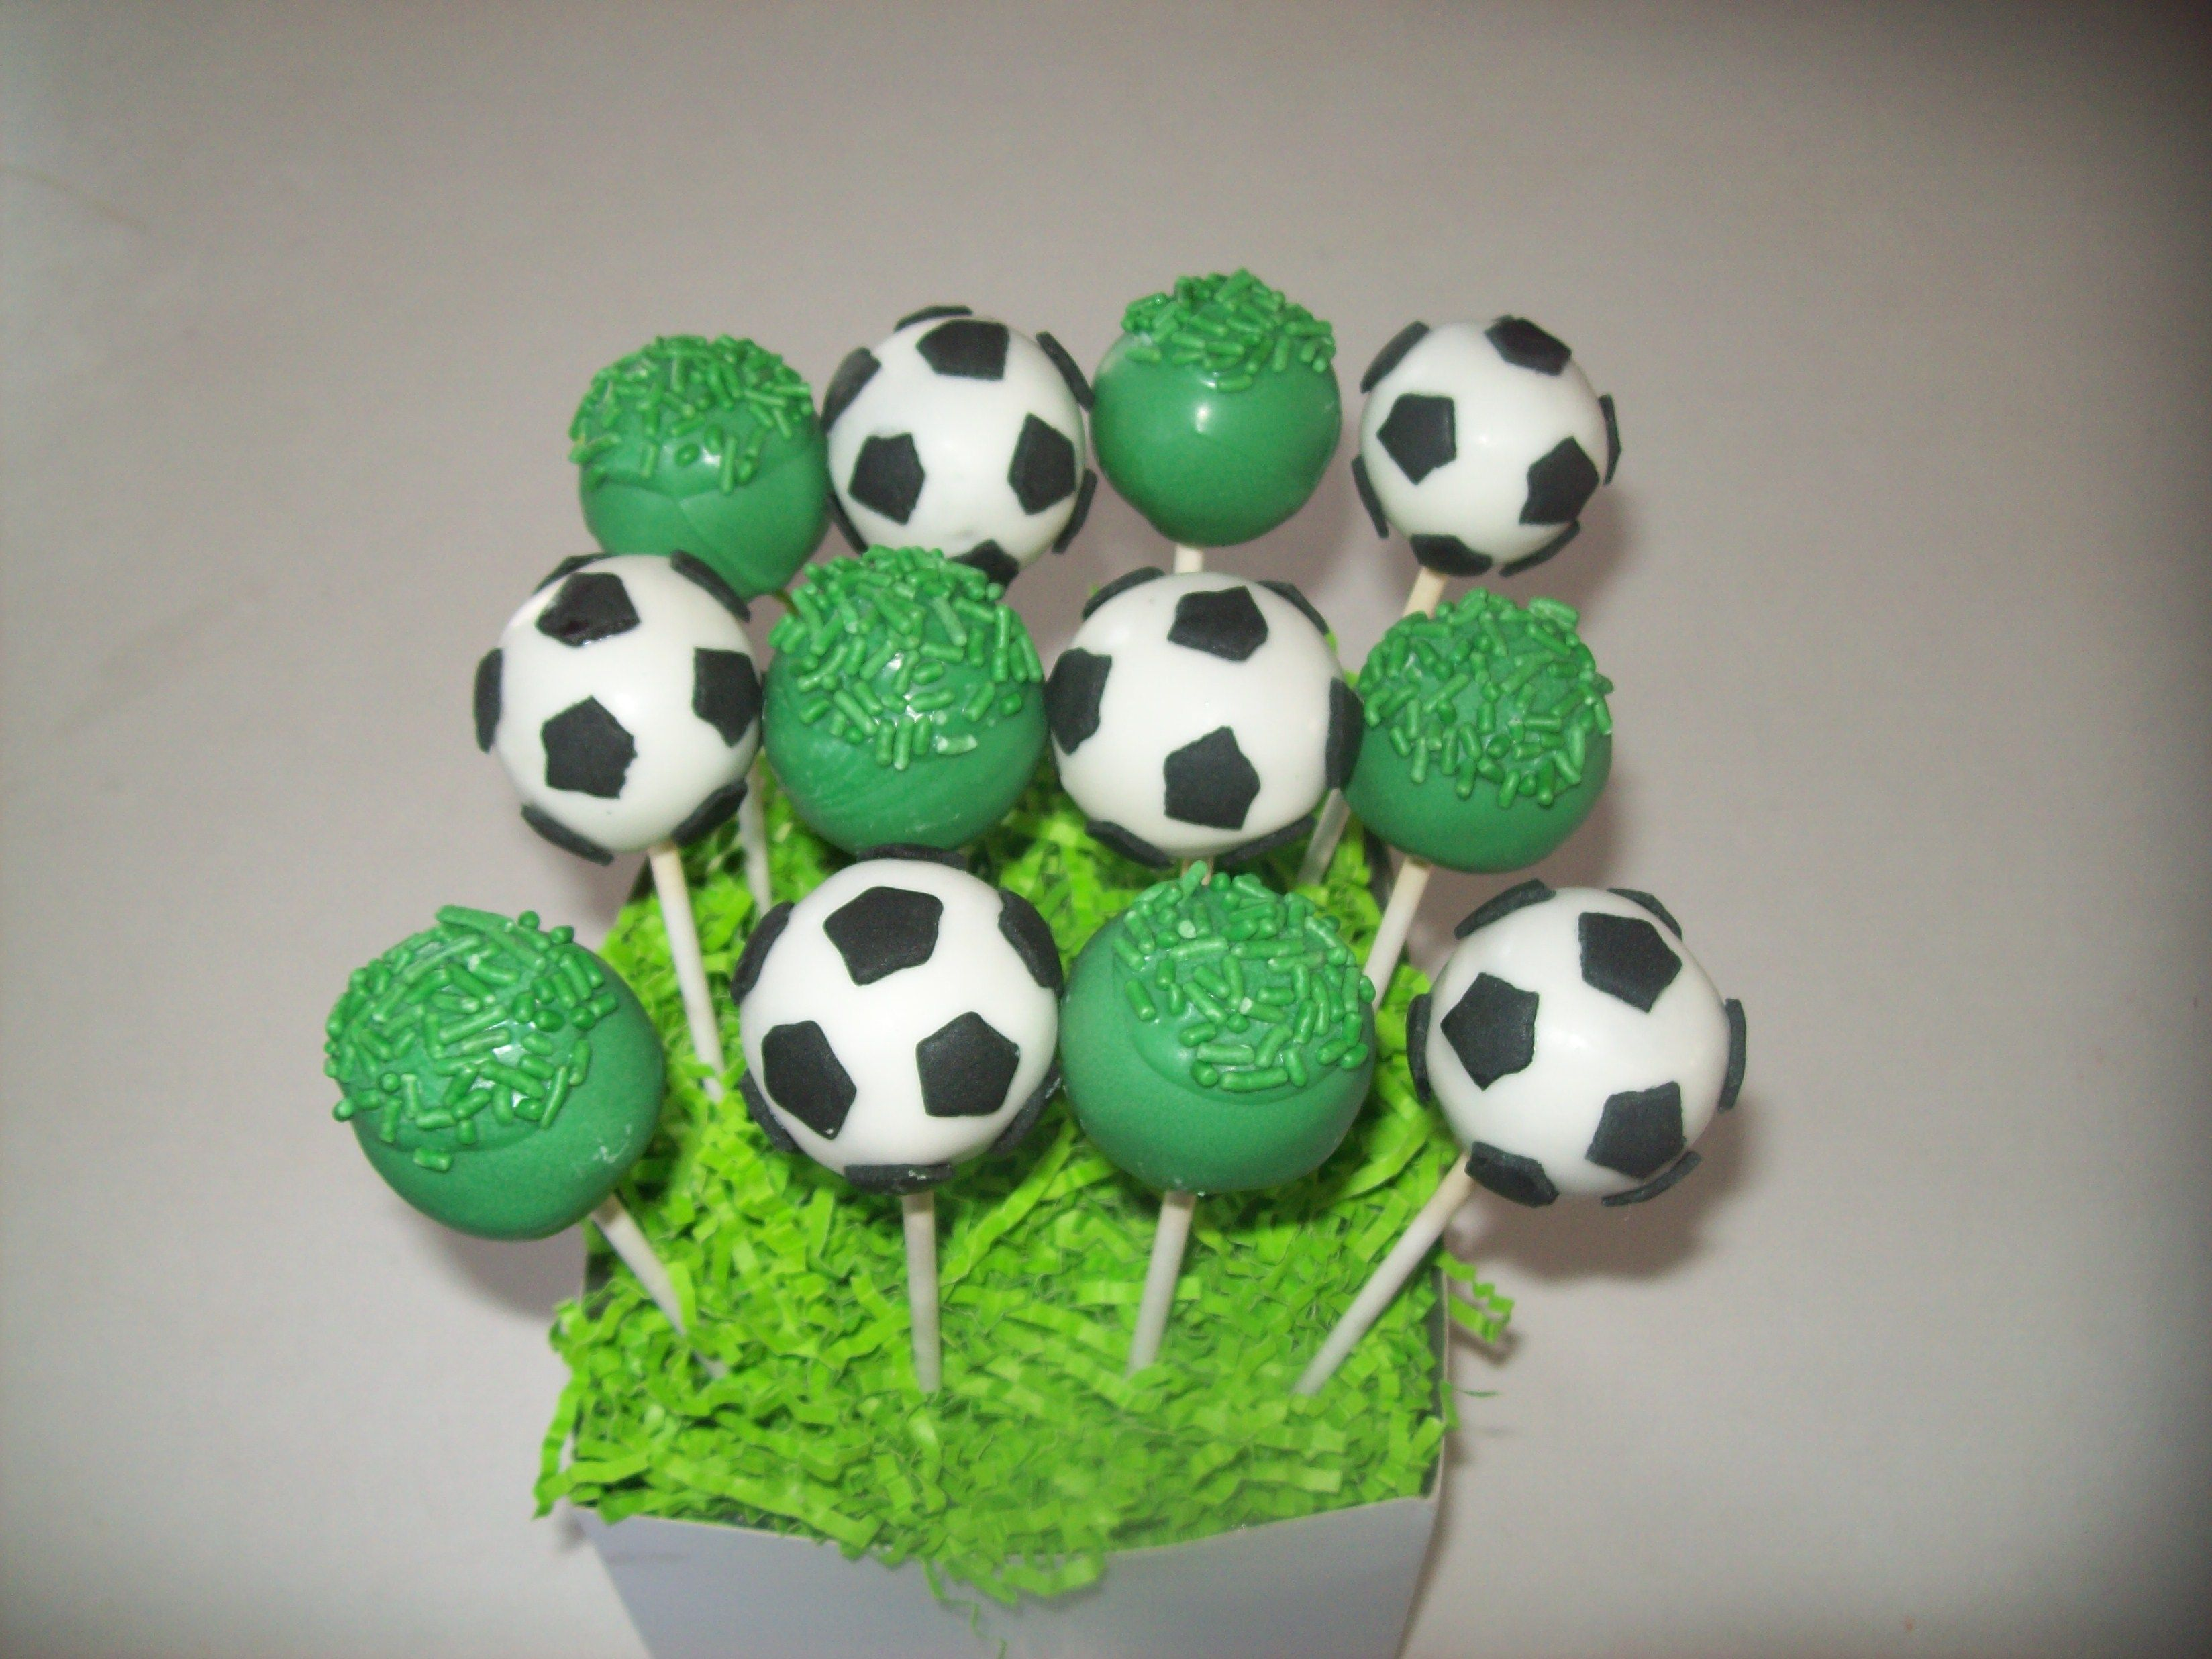 Pin By Heather Petersen Pineda On Cake And Things I Have Made Soccer Birthday Parties Soccer Cake Pops Soccer Ball Cake